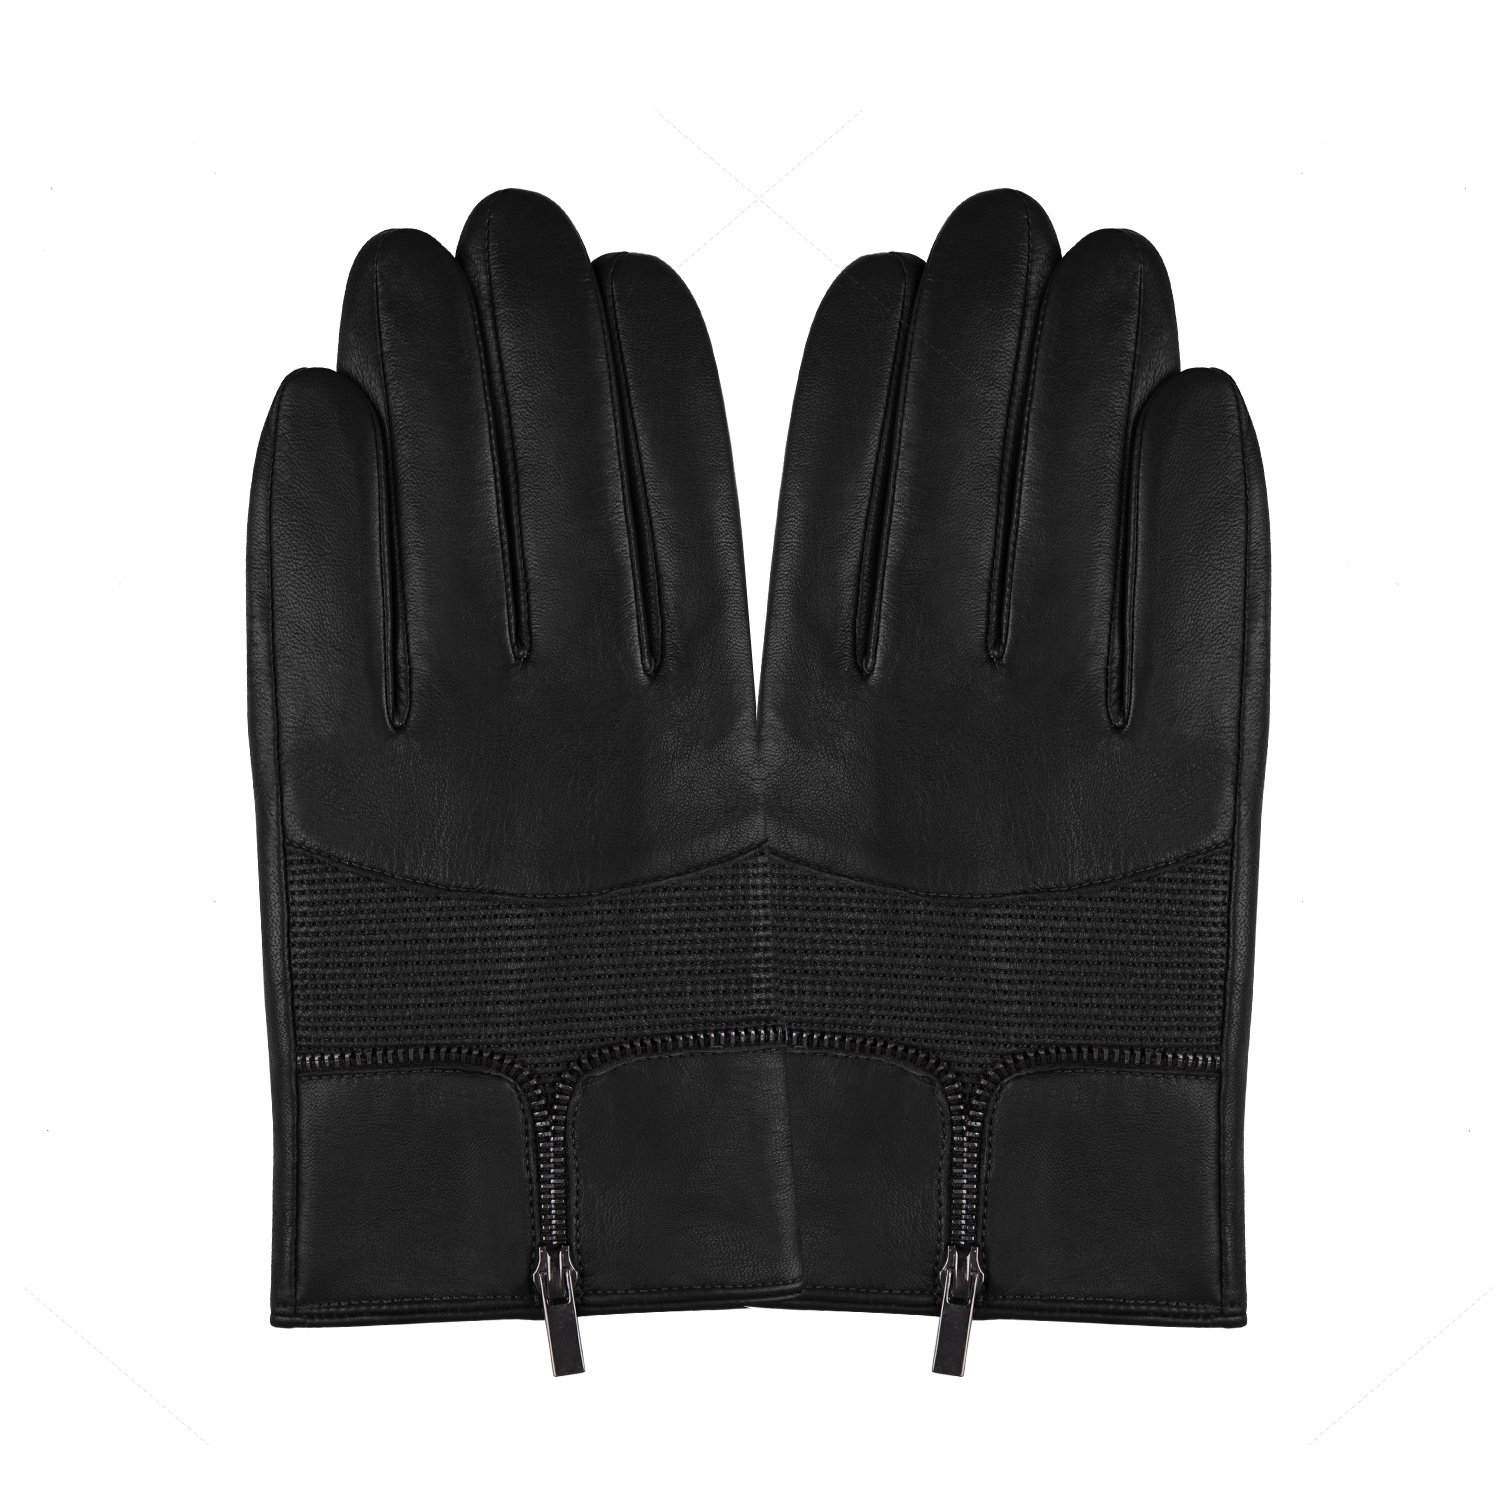 Fioretto New Year Gifts Mens Leather Gloves for Winter Touchscreen Italian Genuine Goatskin Driving Leather Gloves Men Warm Gloves Zipper Decoration Phone Gloves Black 10.5